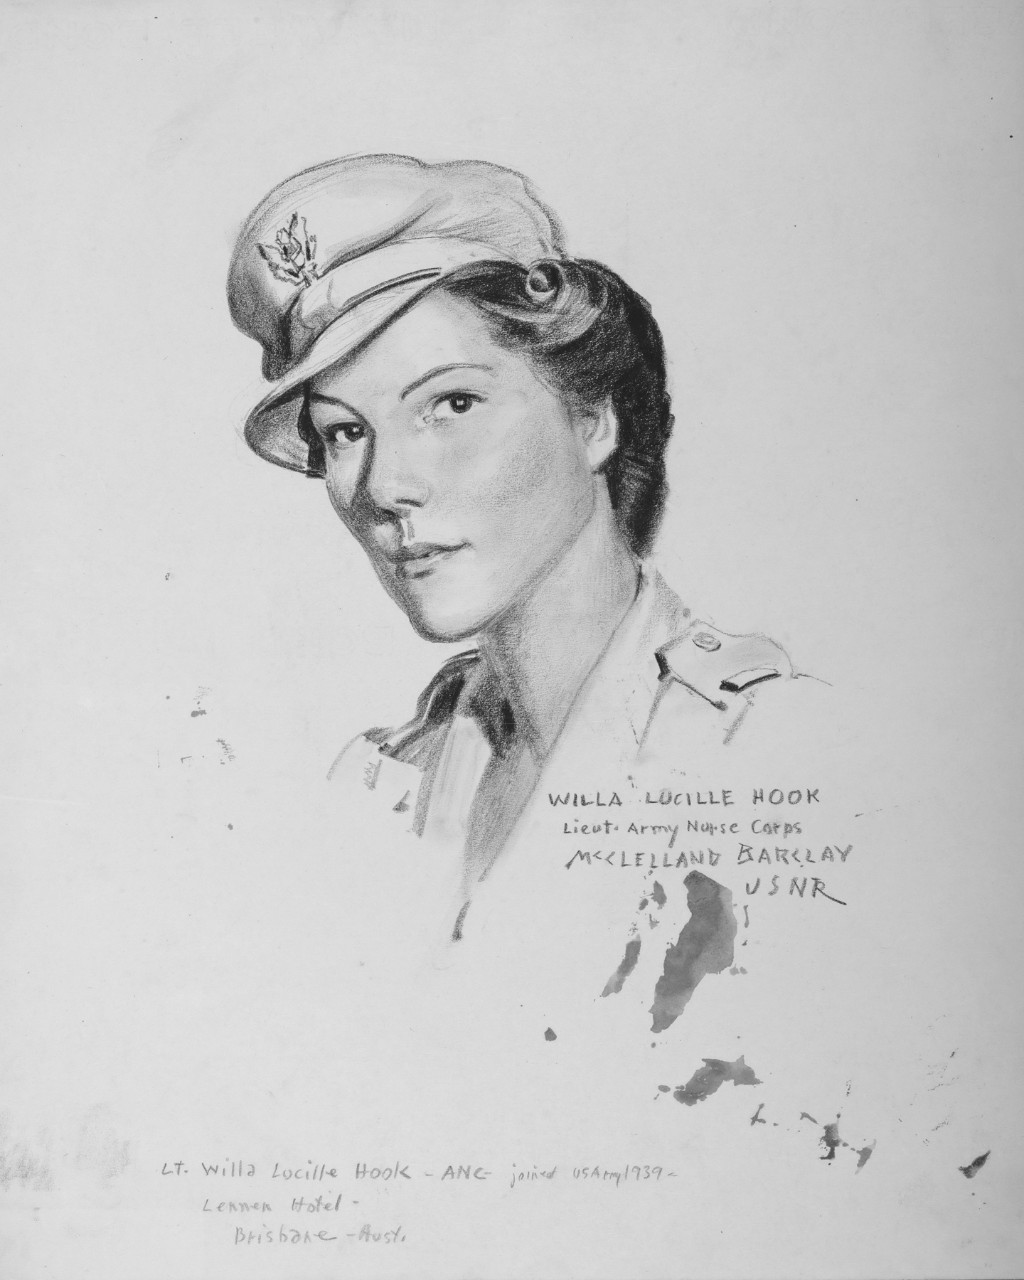 Portrait of LT Willa Lucille Hook, Army Nurse Corps